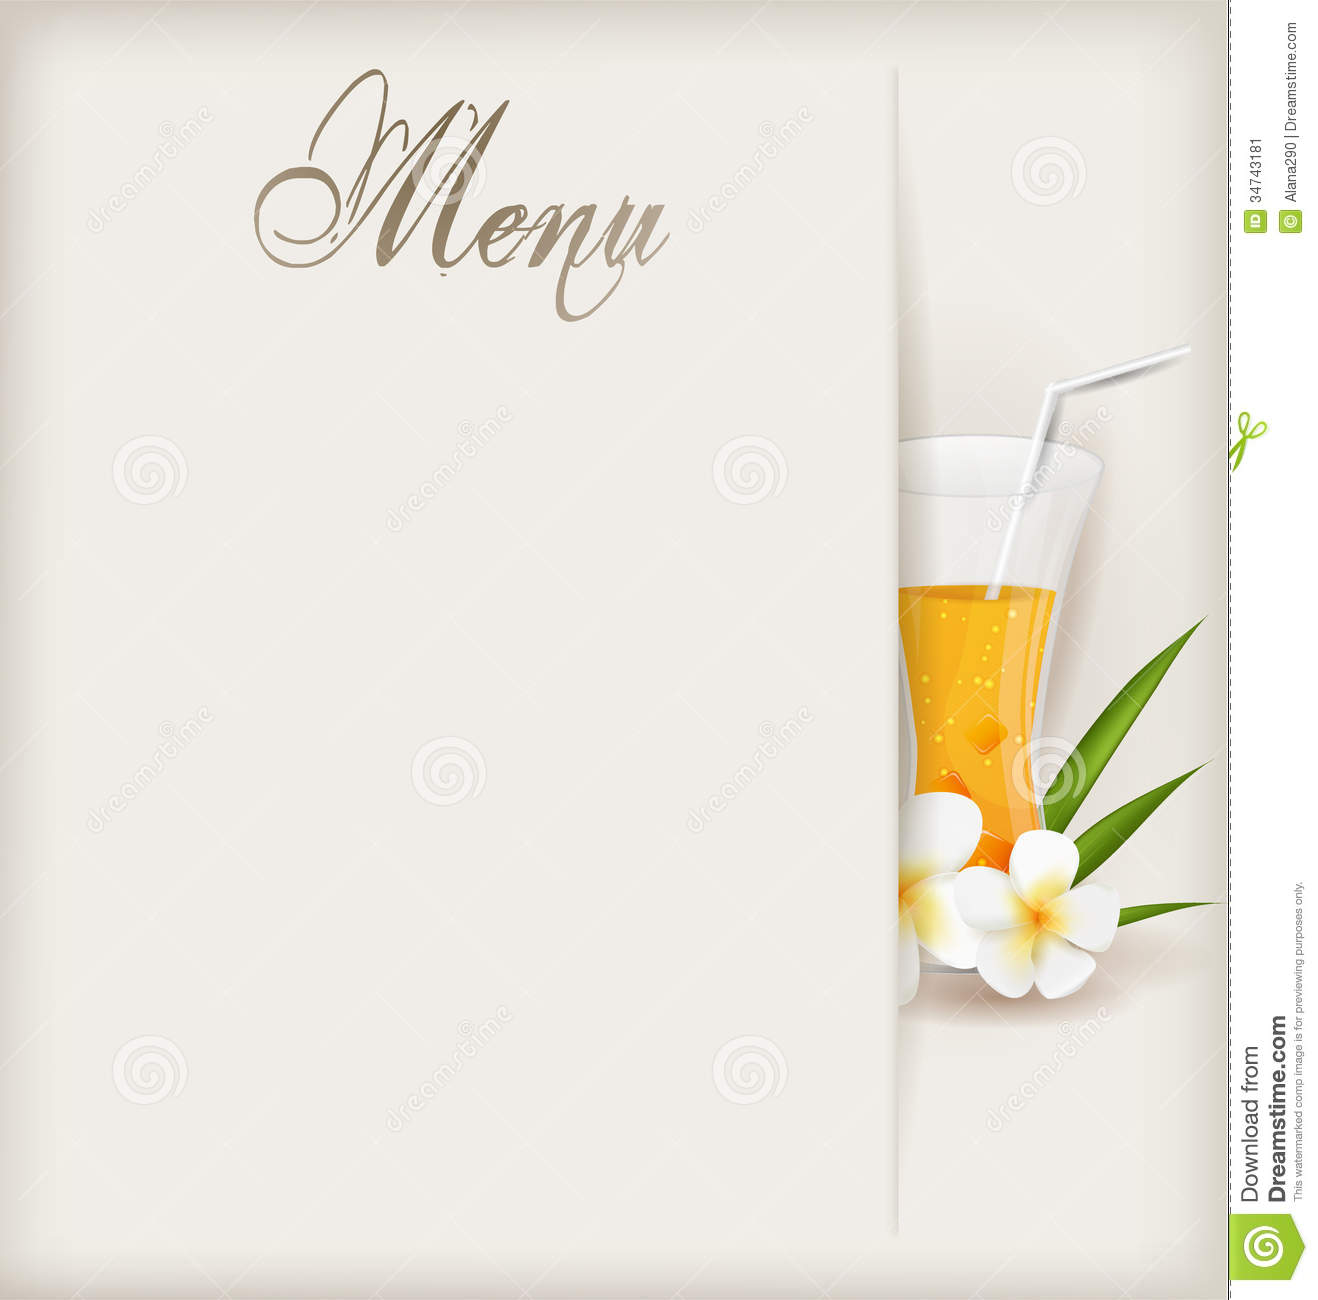 menu template with glass of orange juice stock vector - illustration